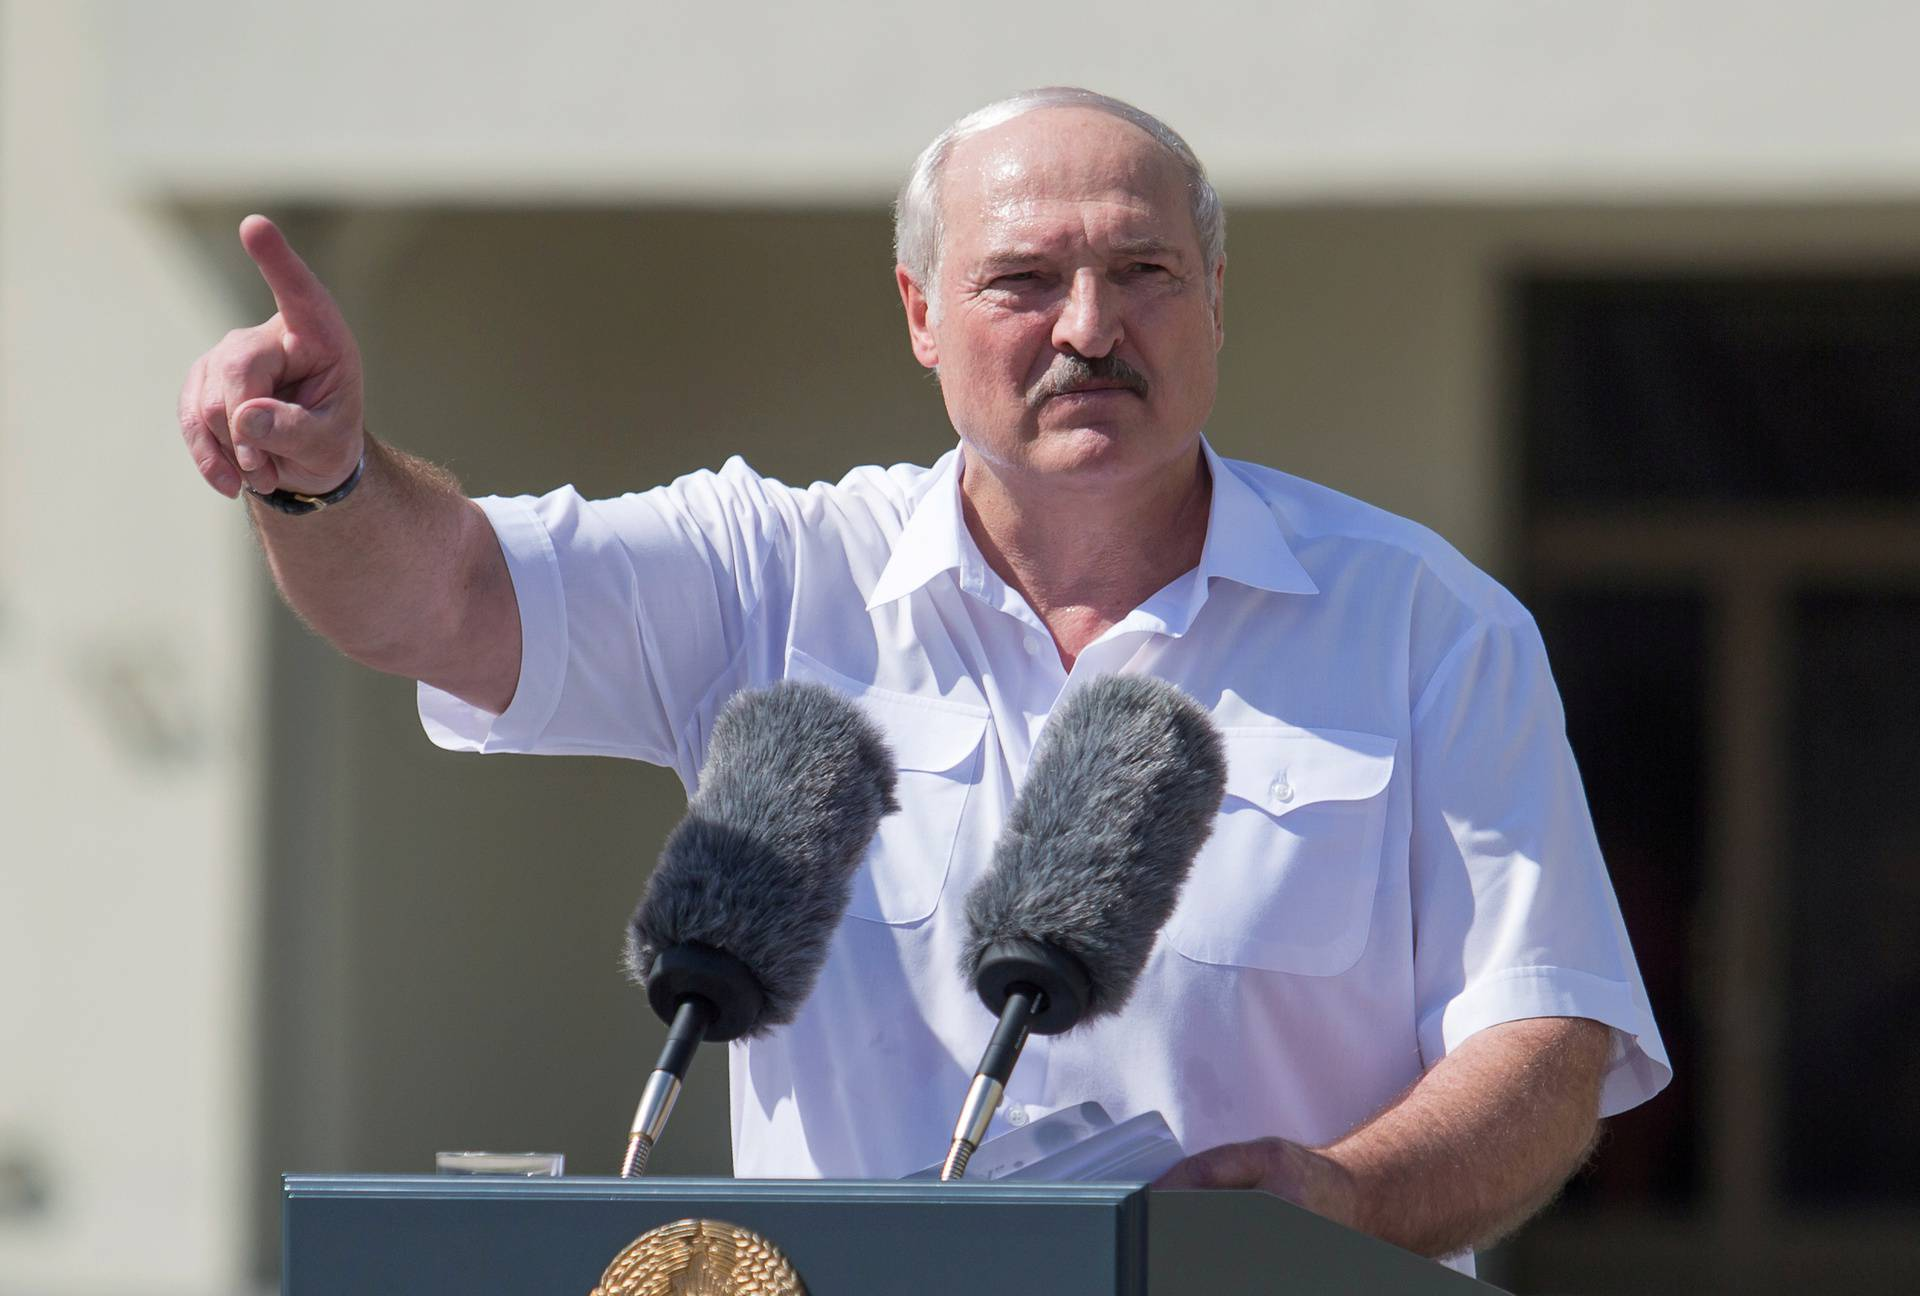 Belarusian President Lukashenko delivers a speech during a rally of his supporters in Minsk